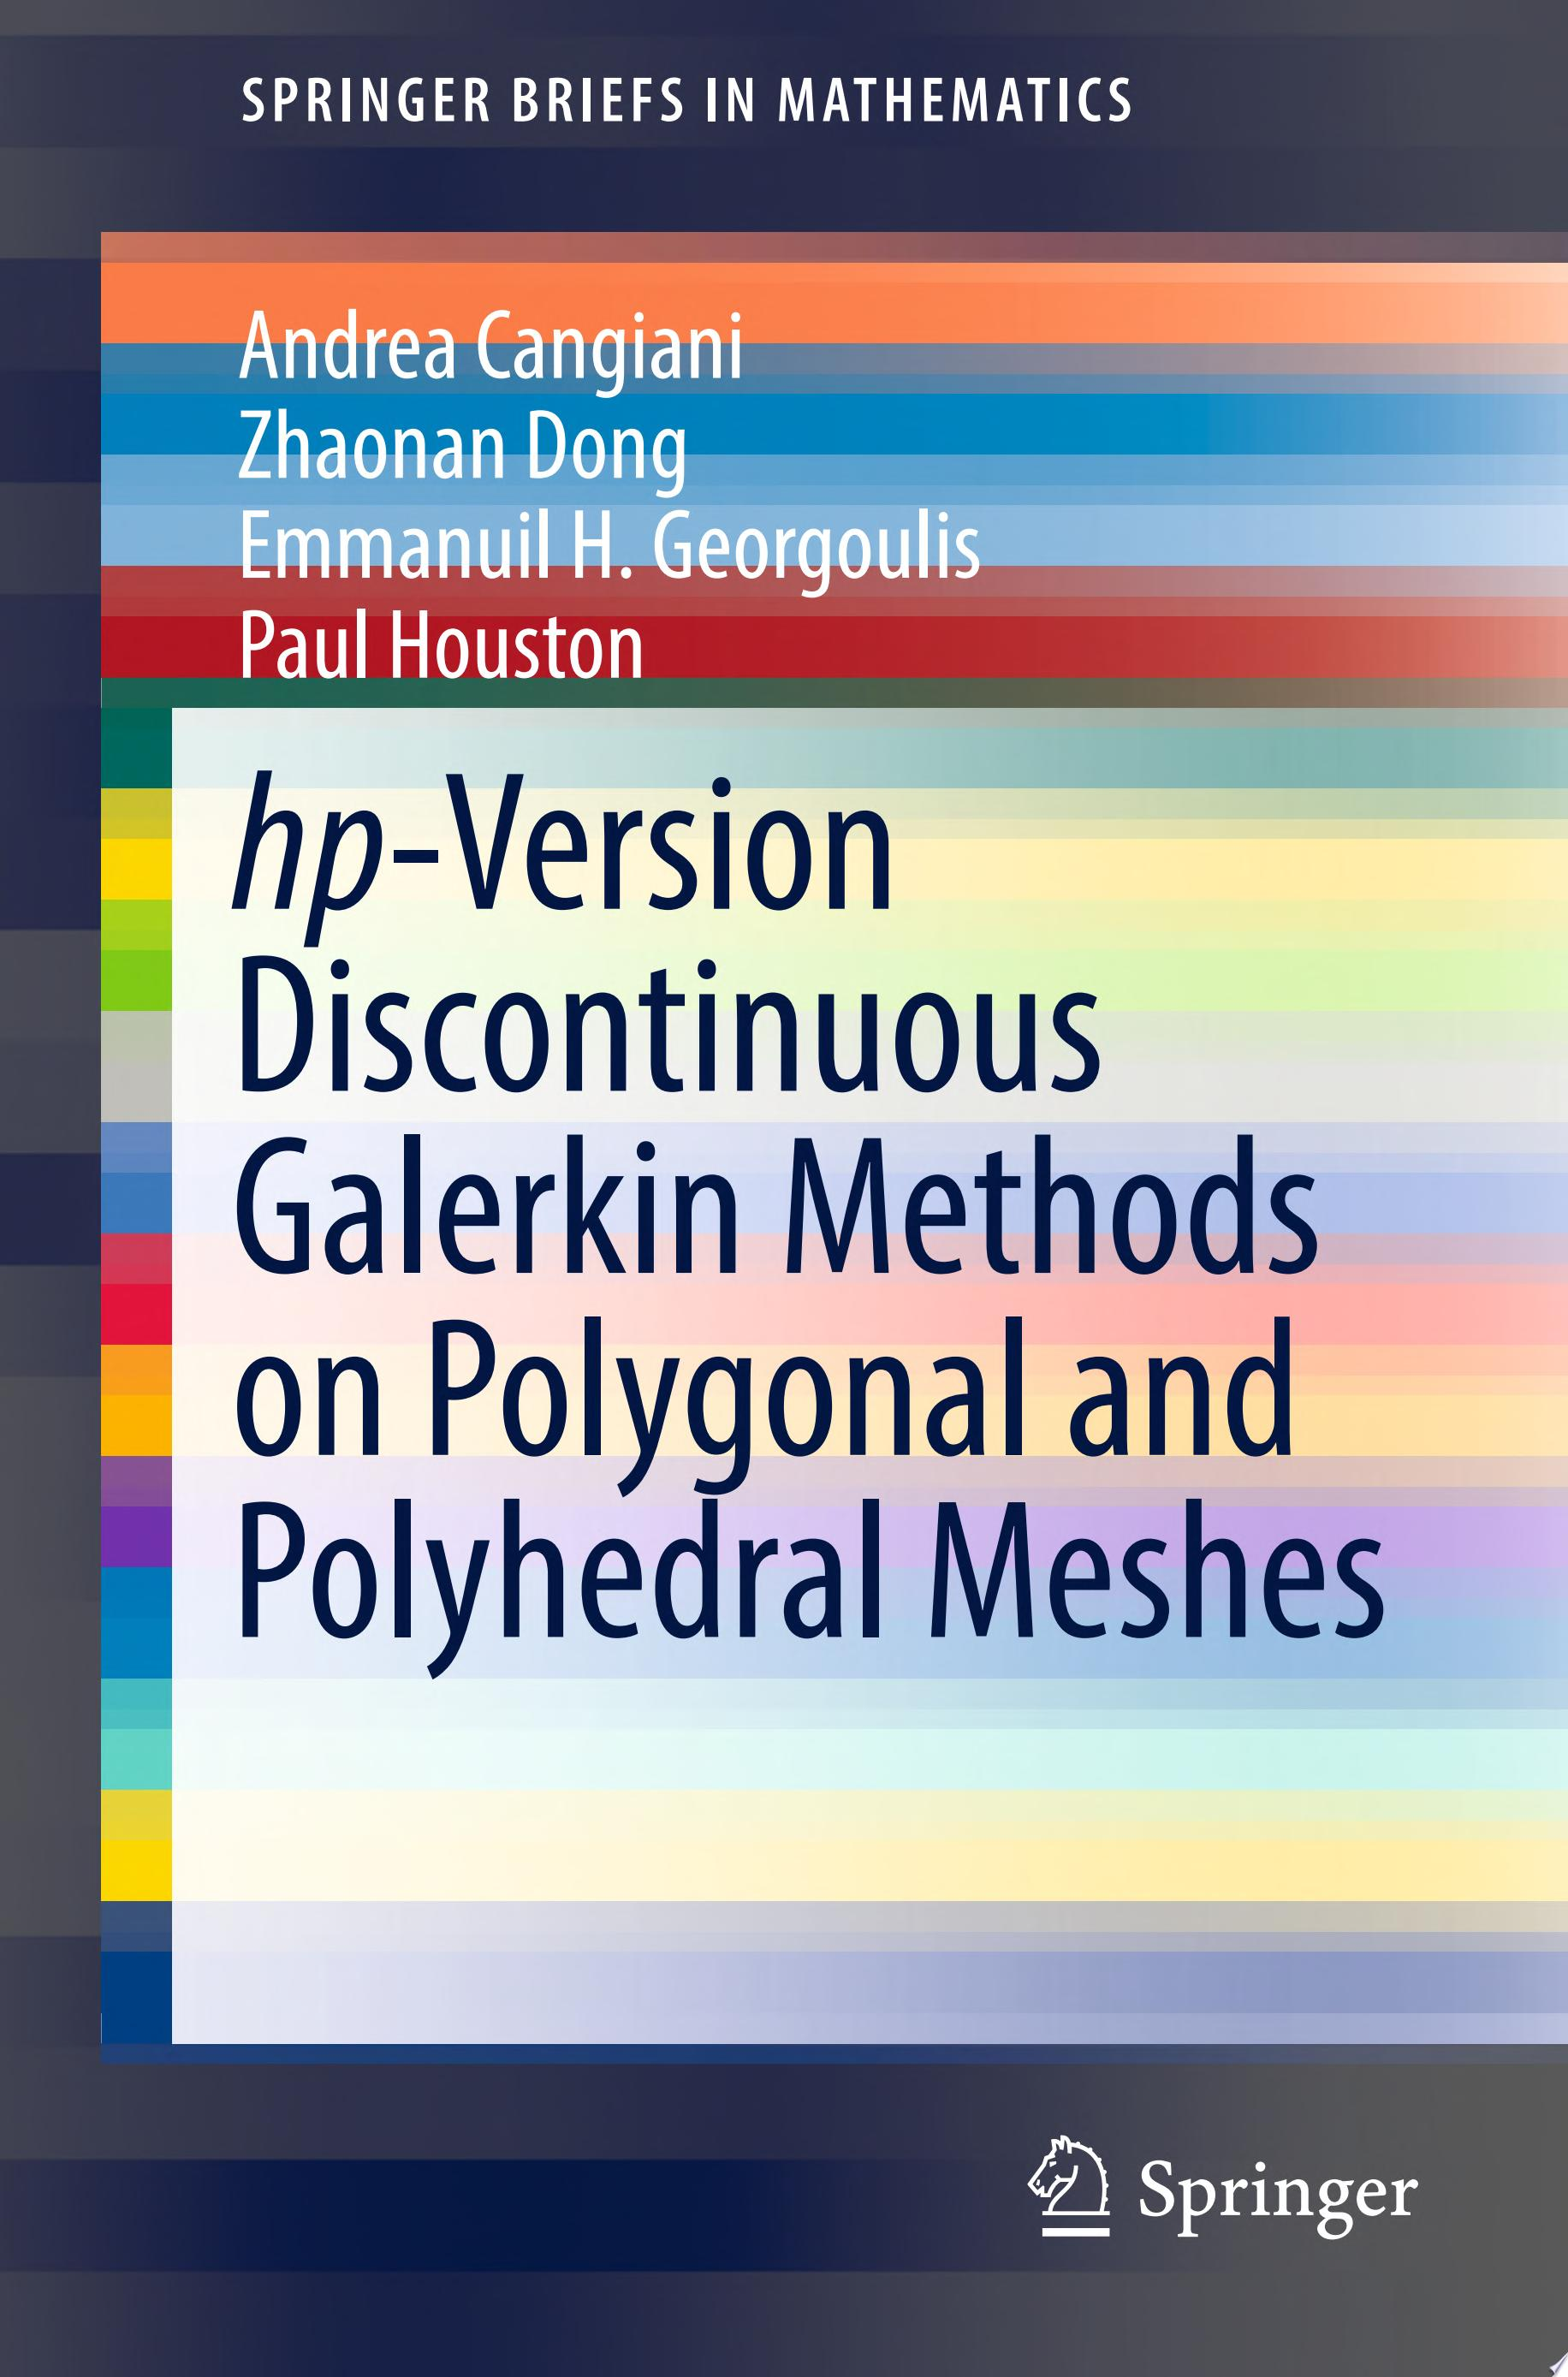 hp Version Discontinuous Galerkin Methods on Polygonal and Polyhedral Meshes